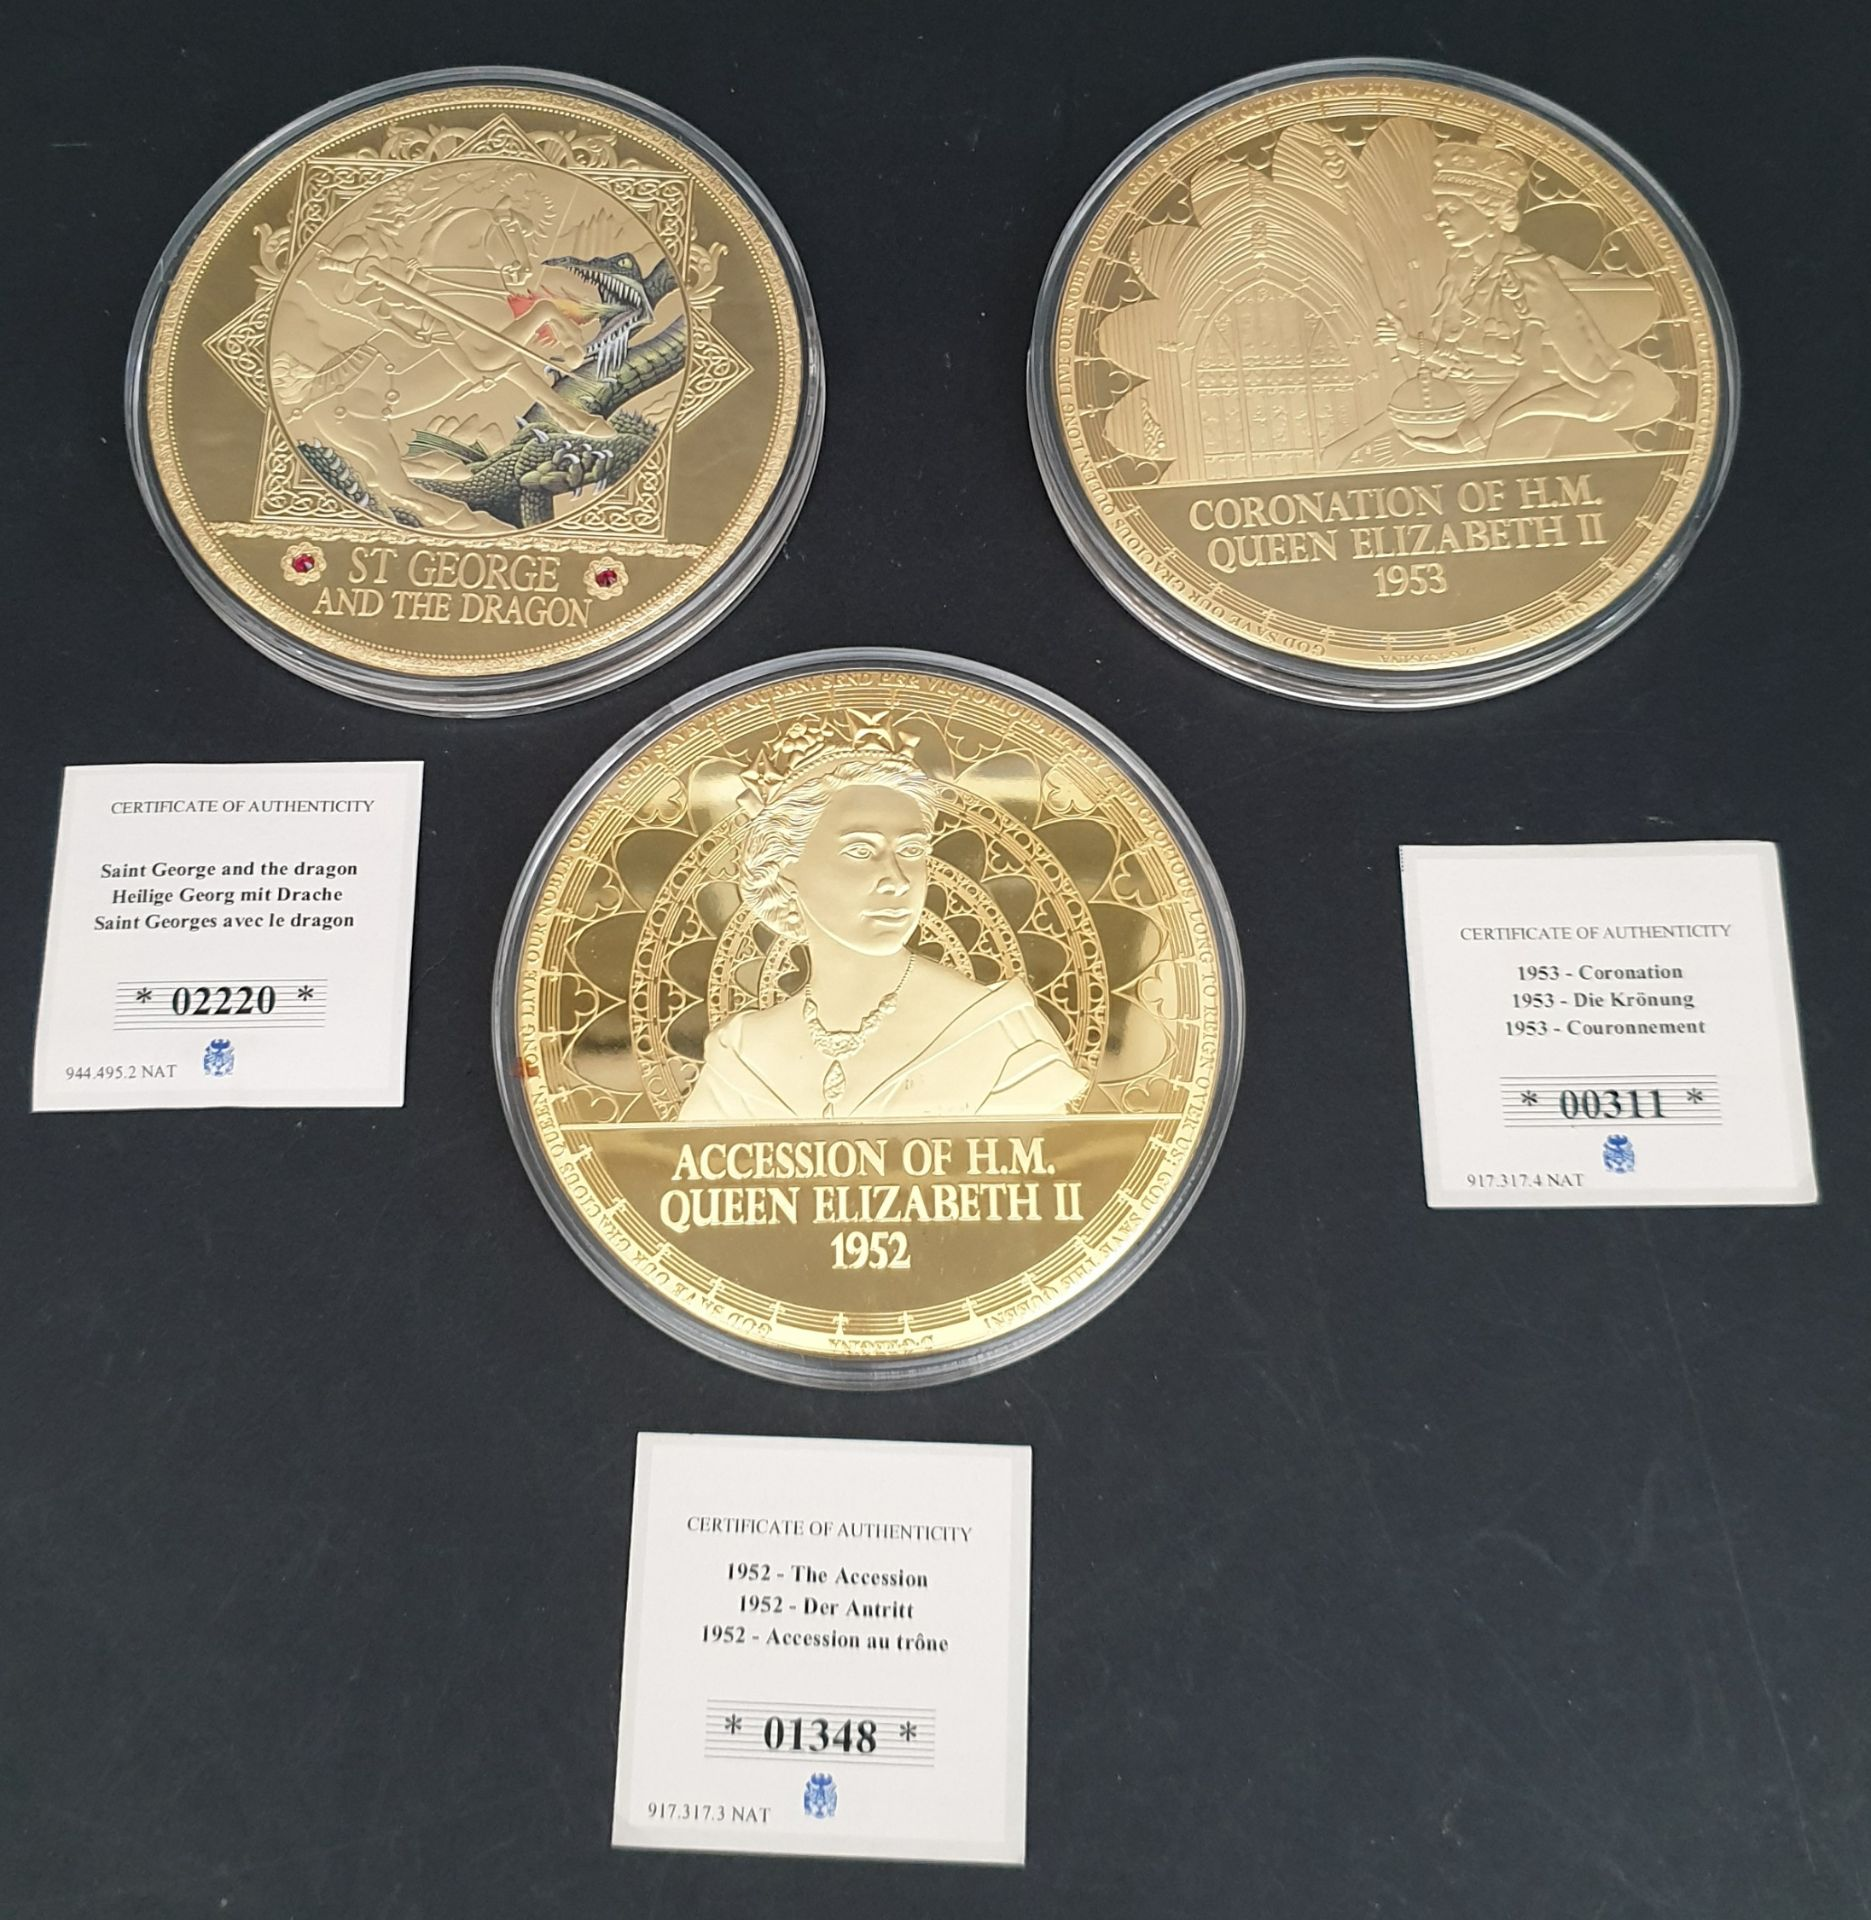 Lot 4 - Collectable Coins 3 x Includes H.M. Queen Elizabeth II 100mm Coins